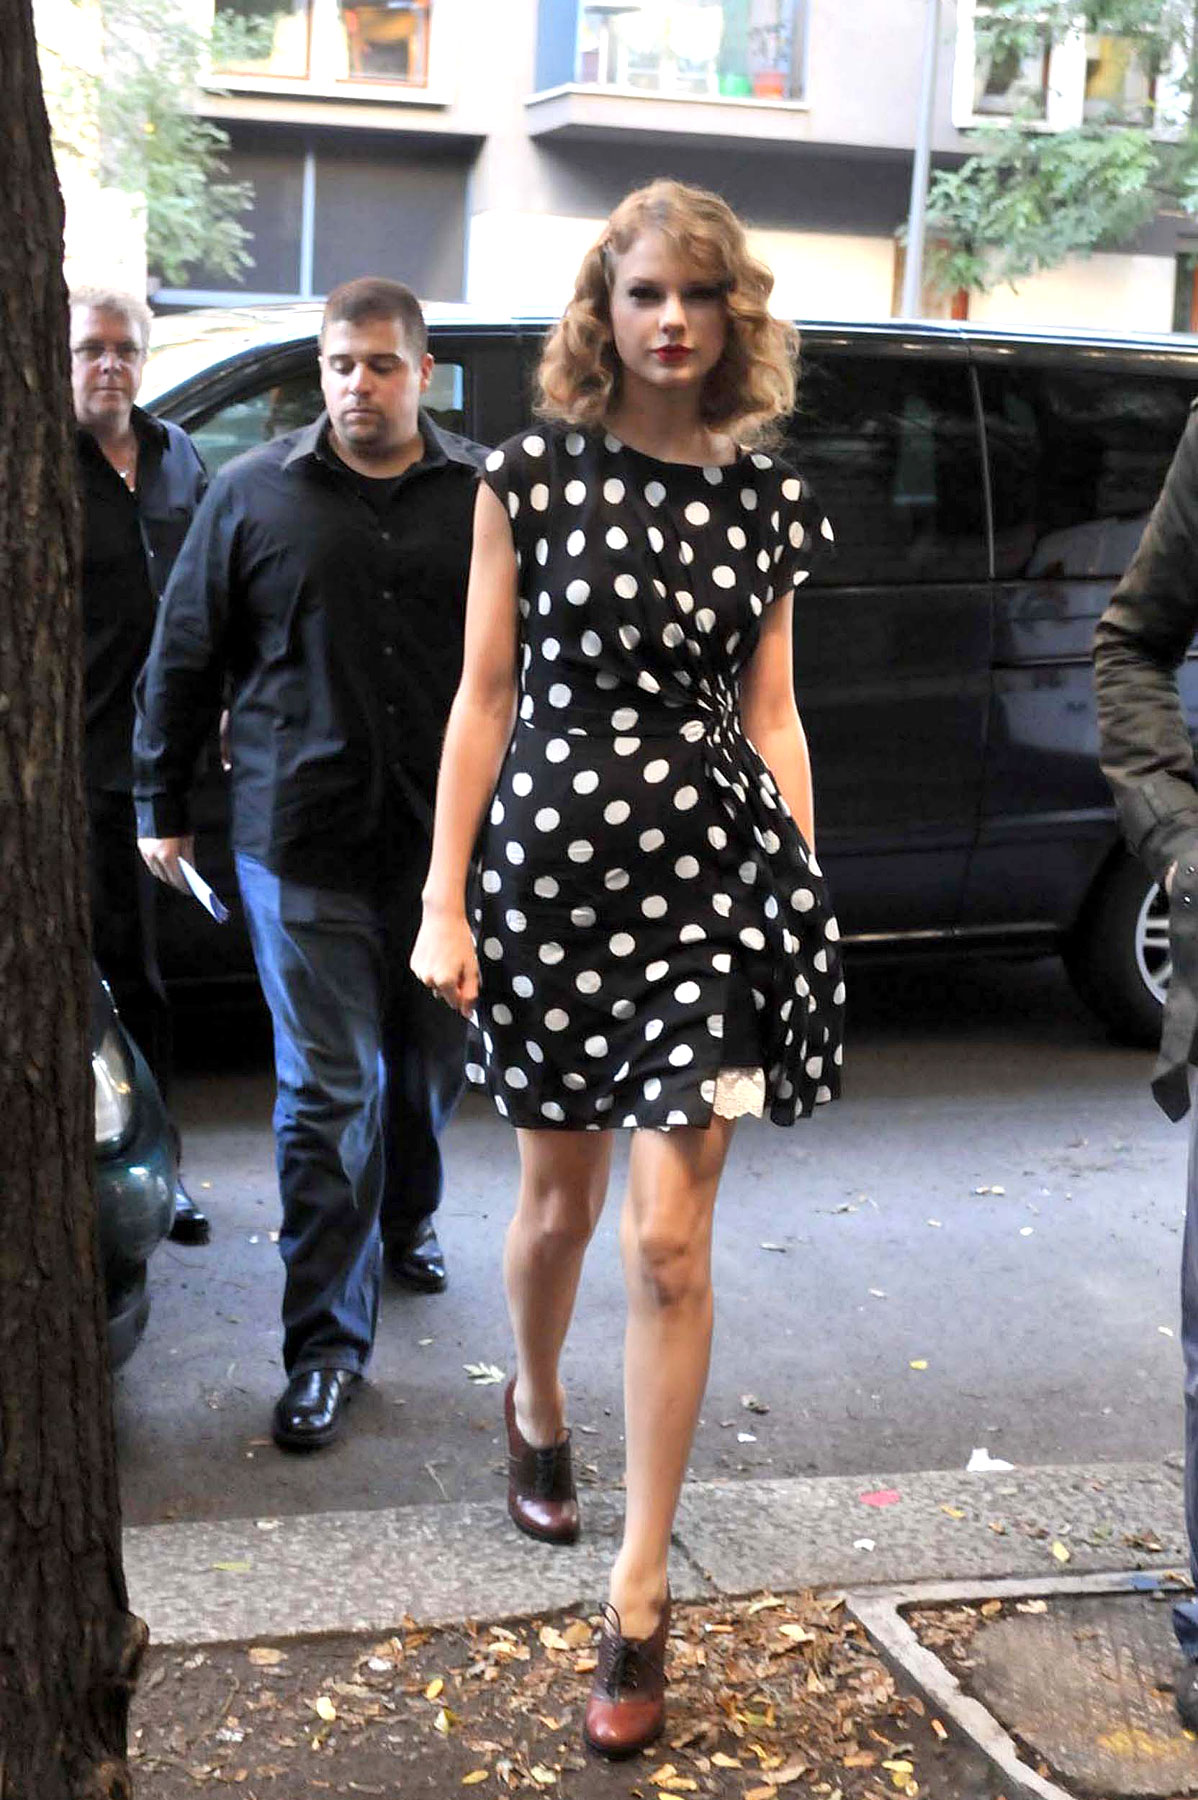 Taylor Swift Is Acting a Little Dotty (PHOTOS)